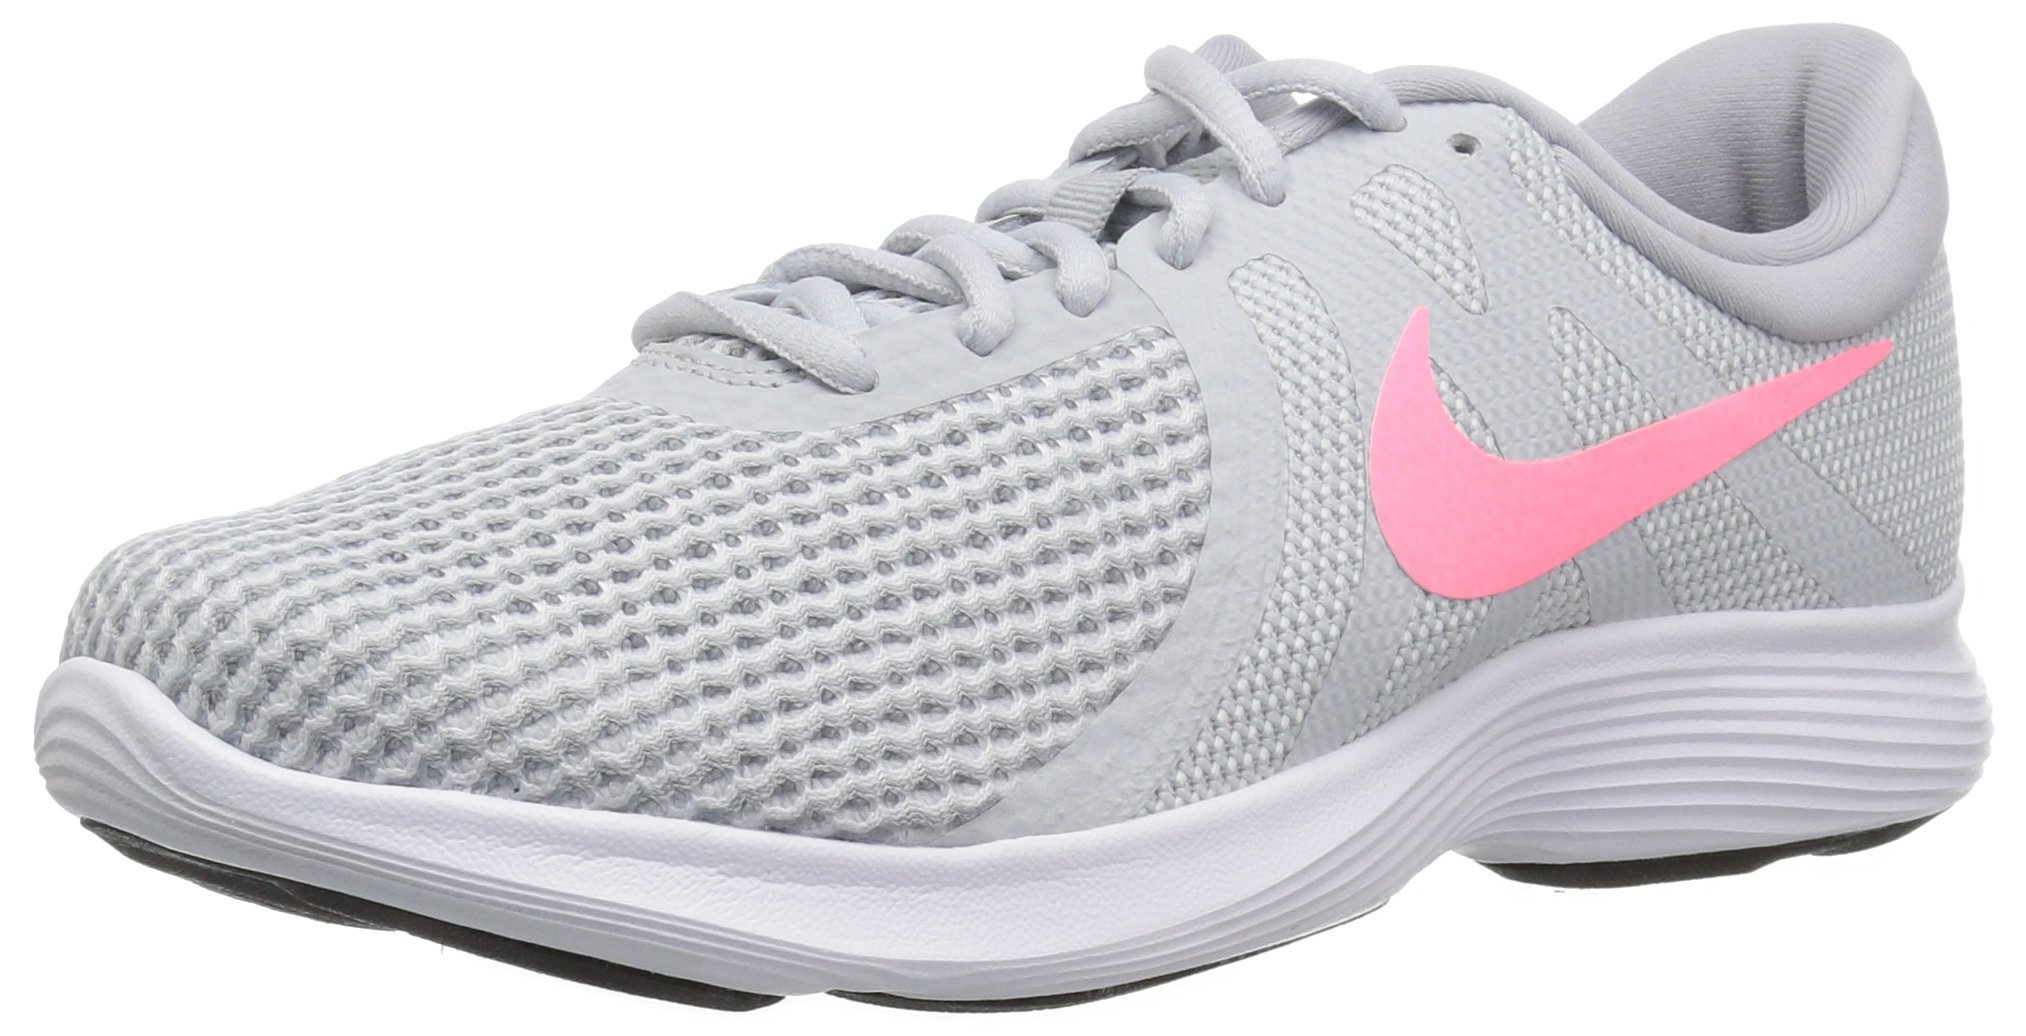 b8a167c4ef09f Galleon - NIKE Women s Revolution 4 Running Shoe